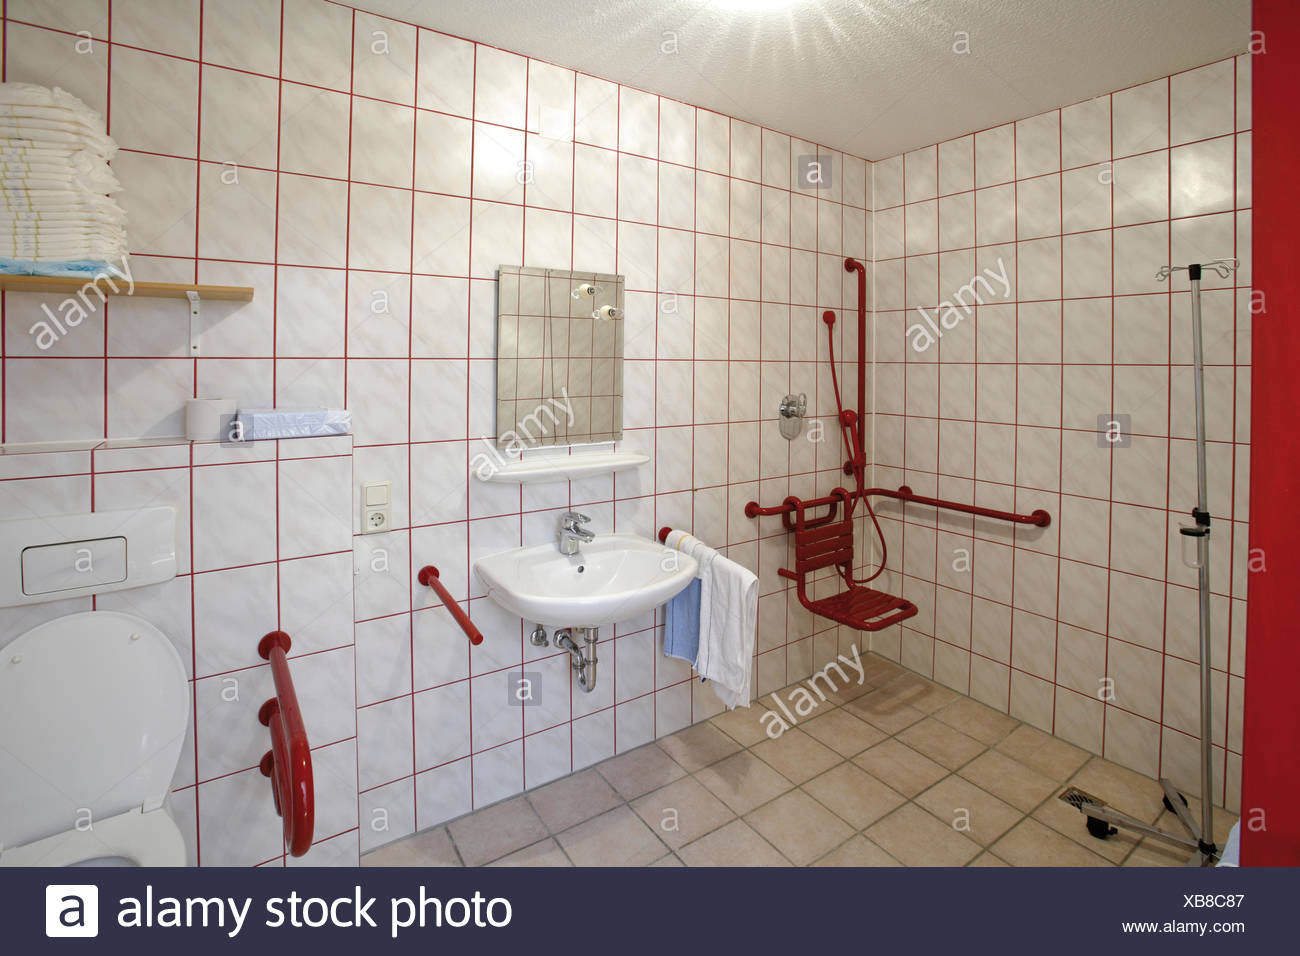 Salle De Bain Accessible Handicape ~ accessible bathroom photos accessible bathroom images alamy